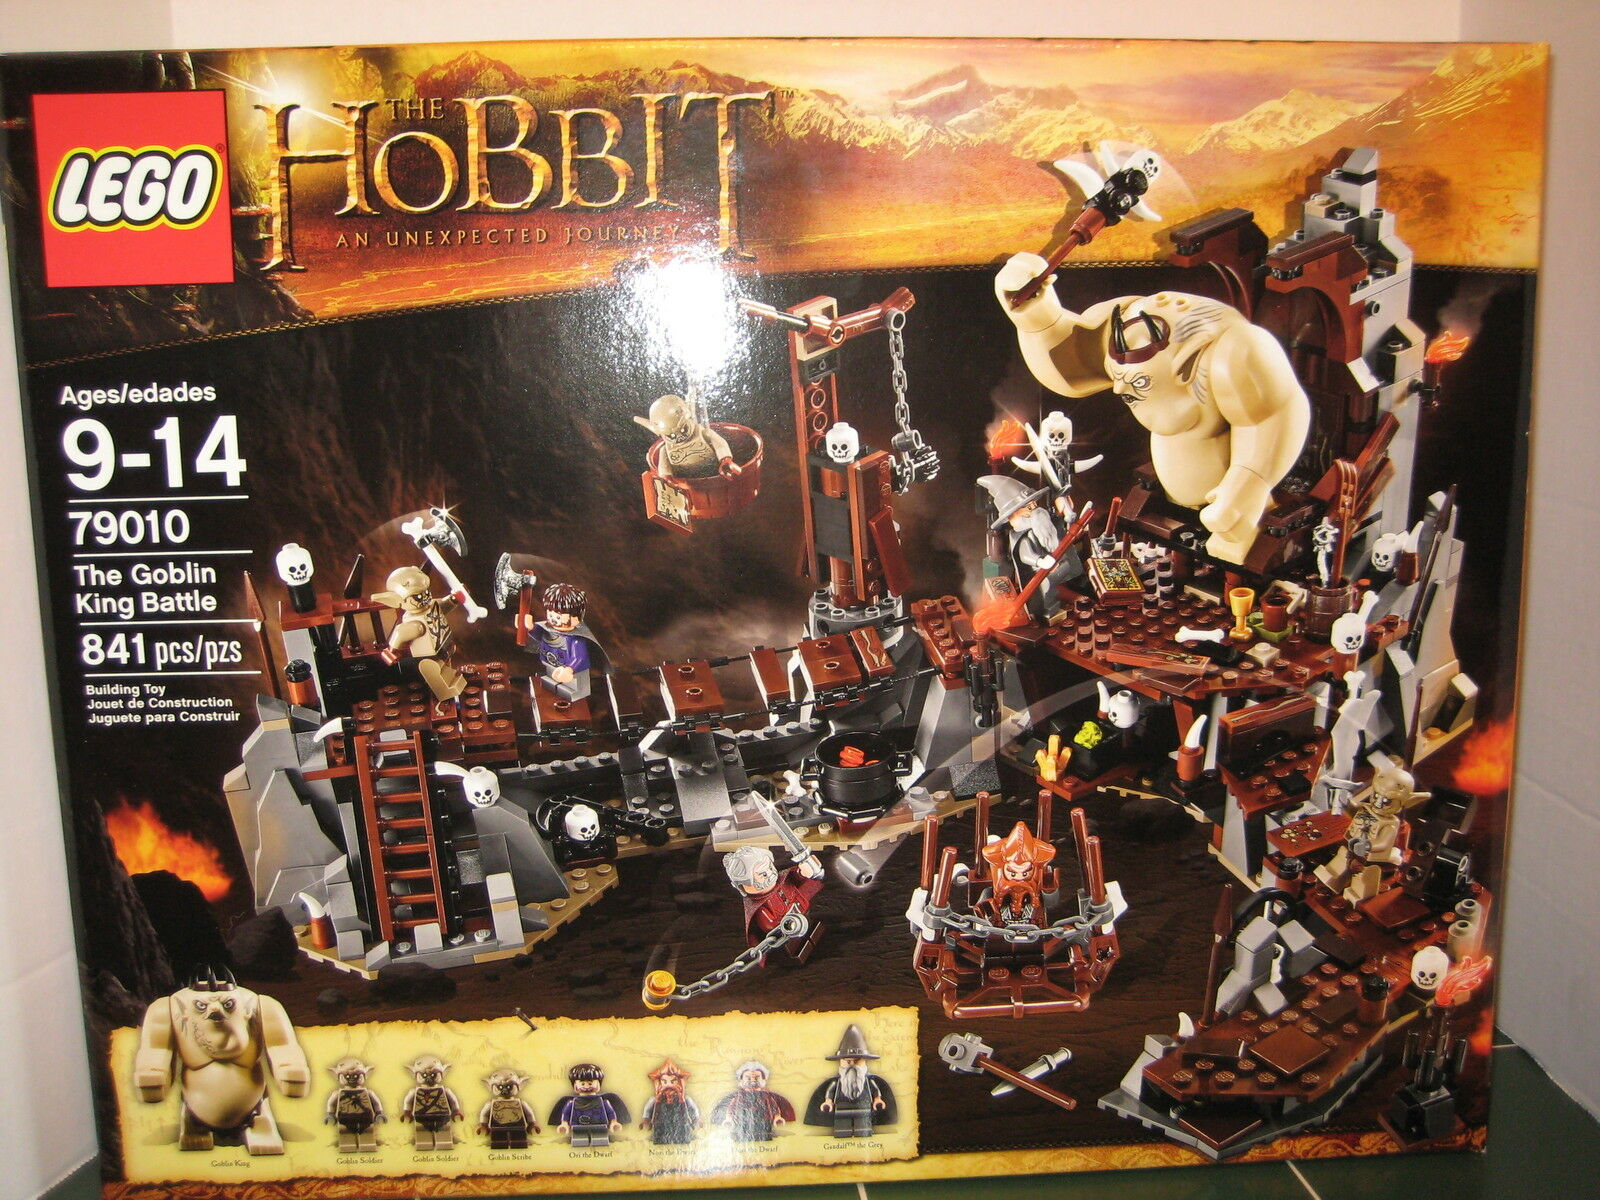 Lego The Hobbit The Goblin King Battle   79010 Gandalf the Grau